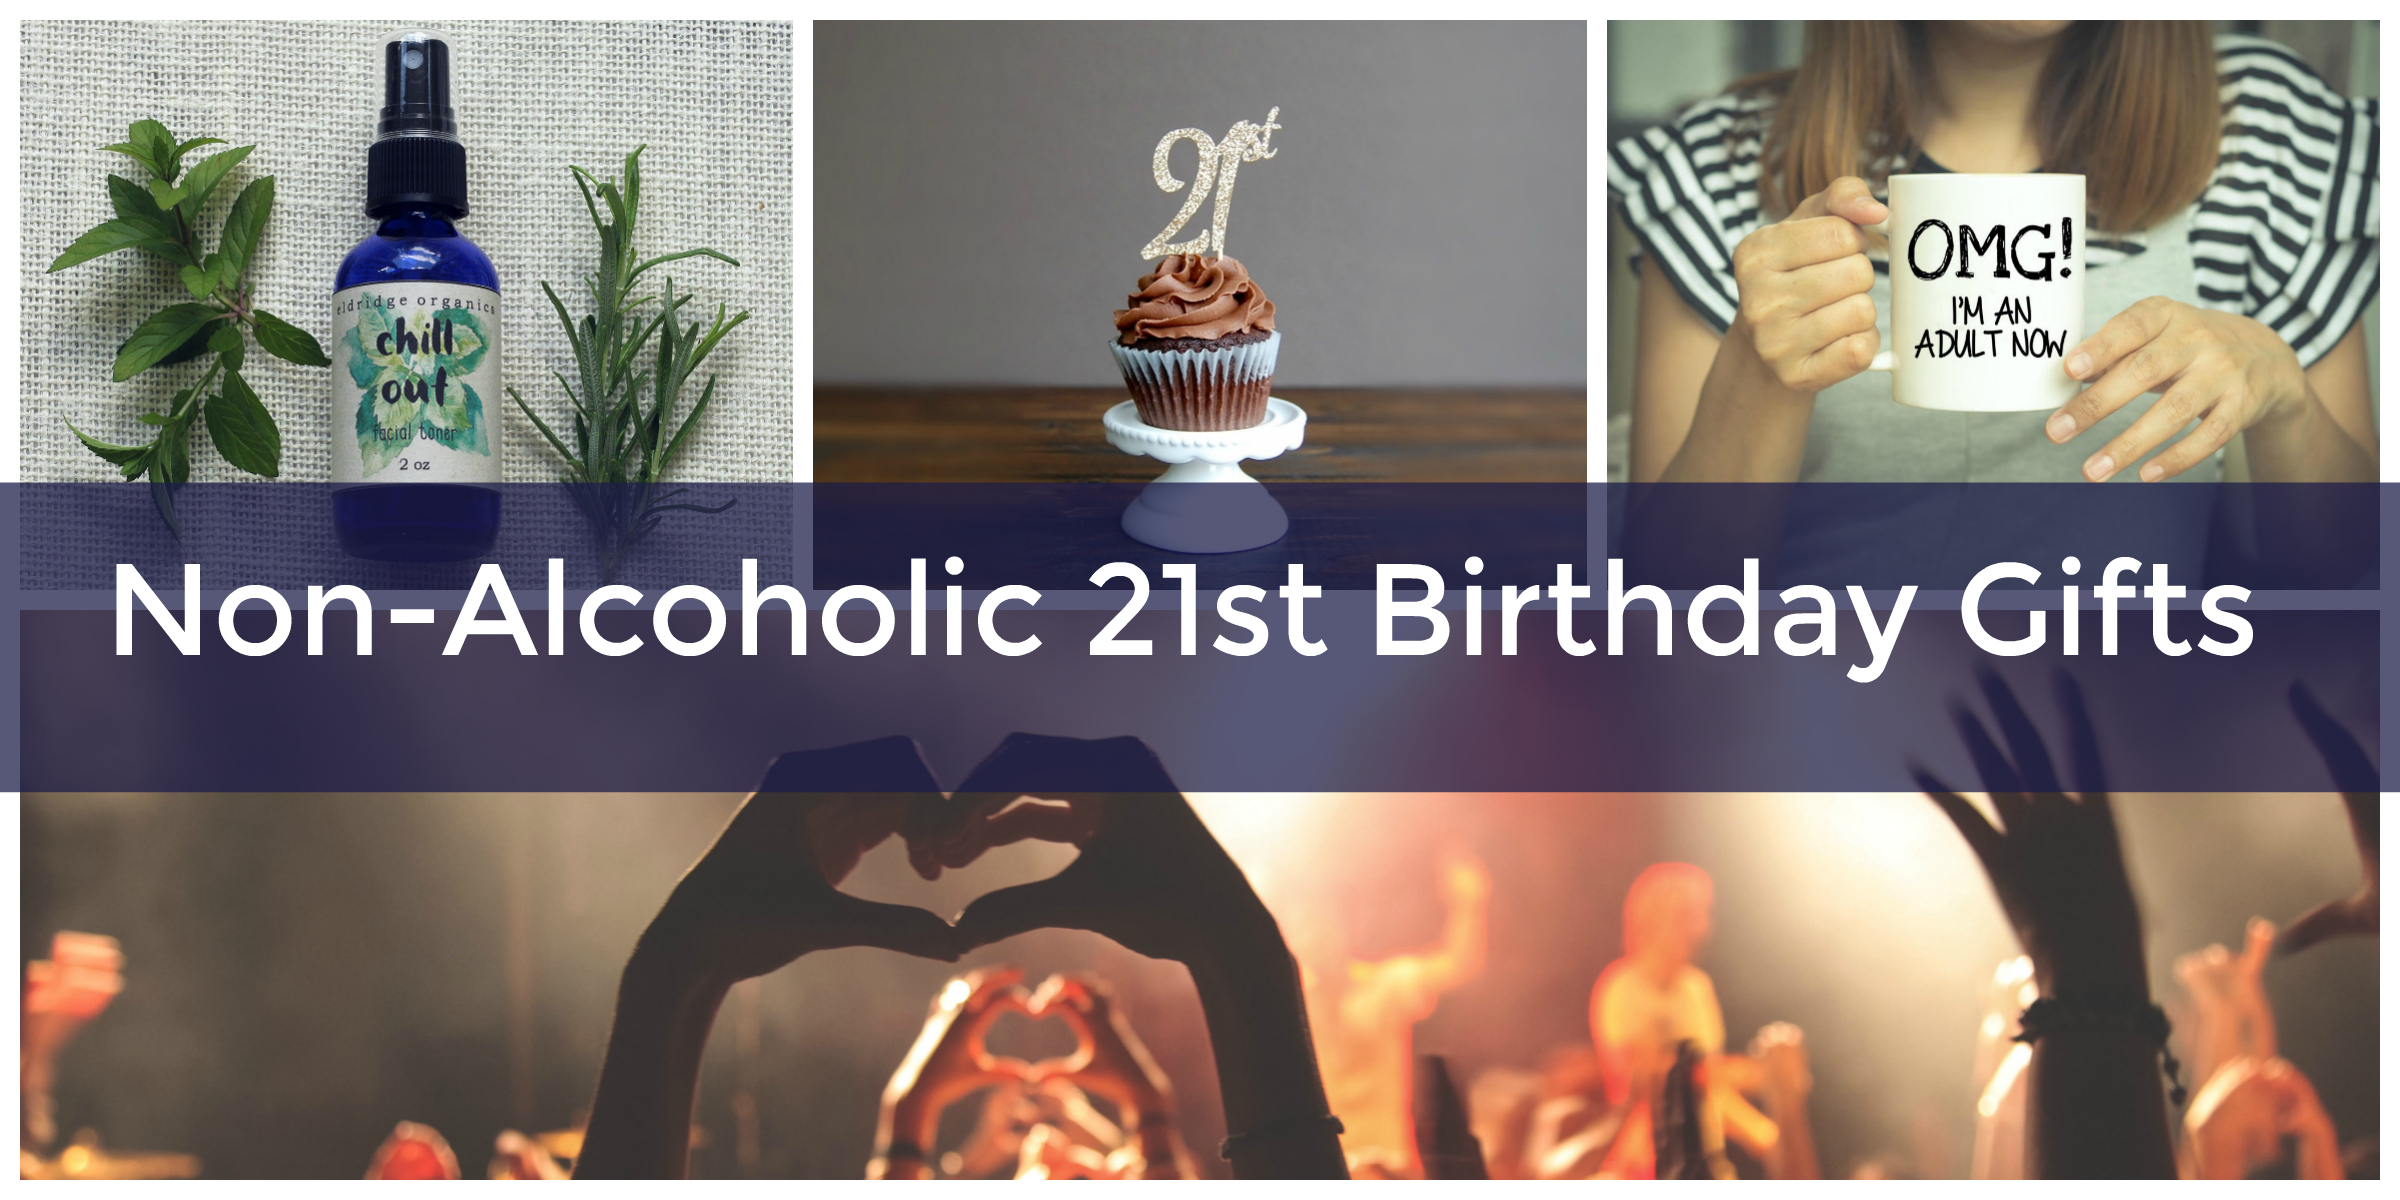 Fun Non-Alcoholic 21st Birthday Gift Ideas For Non-Drinkers